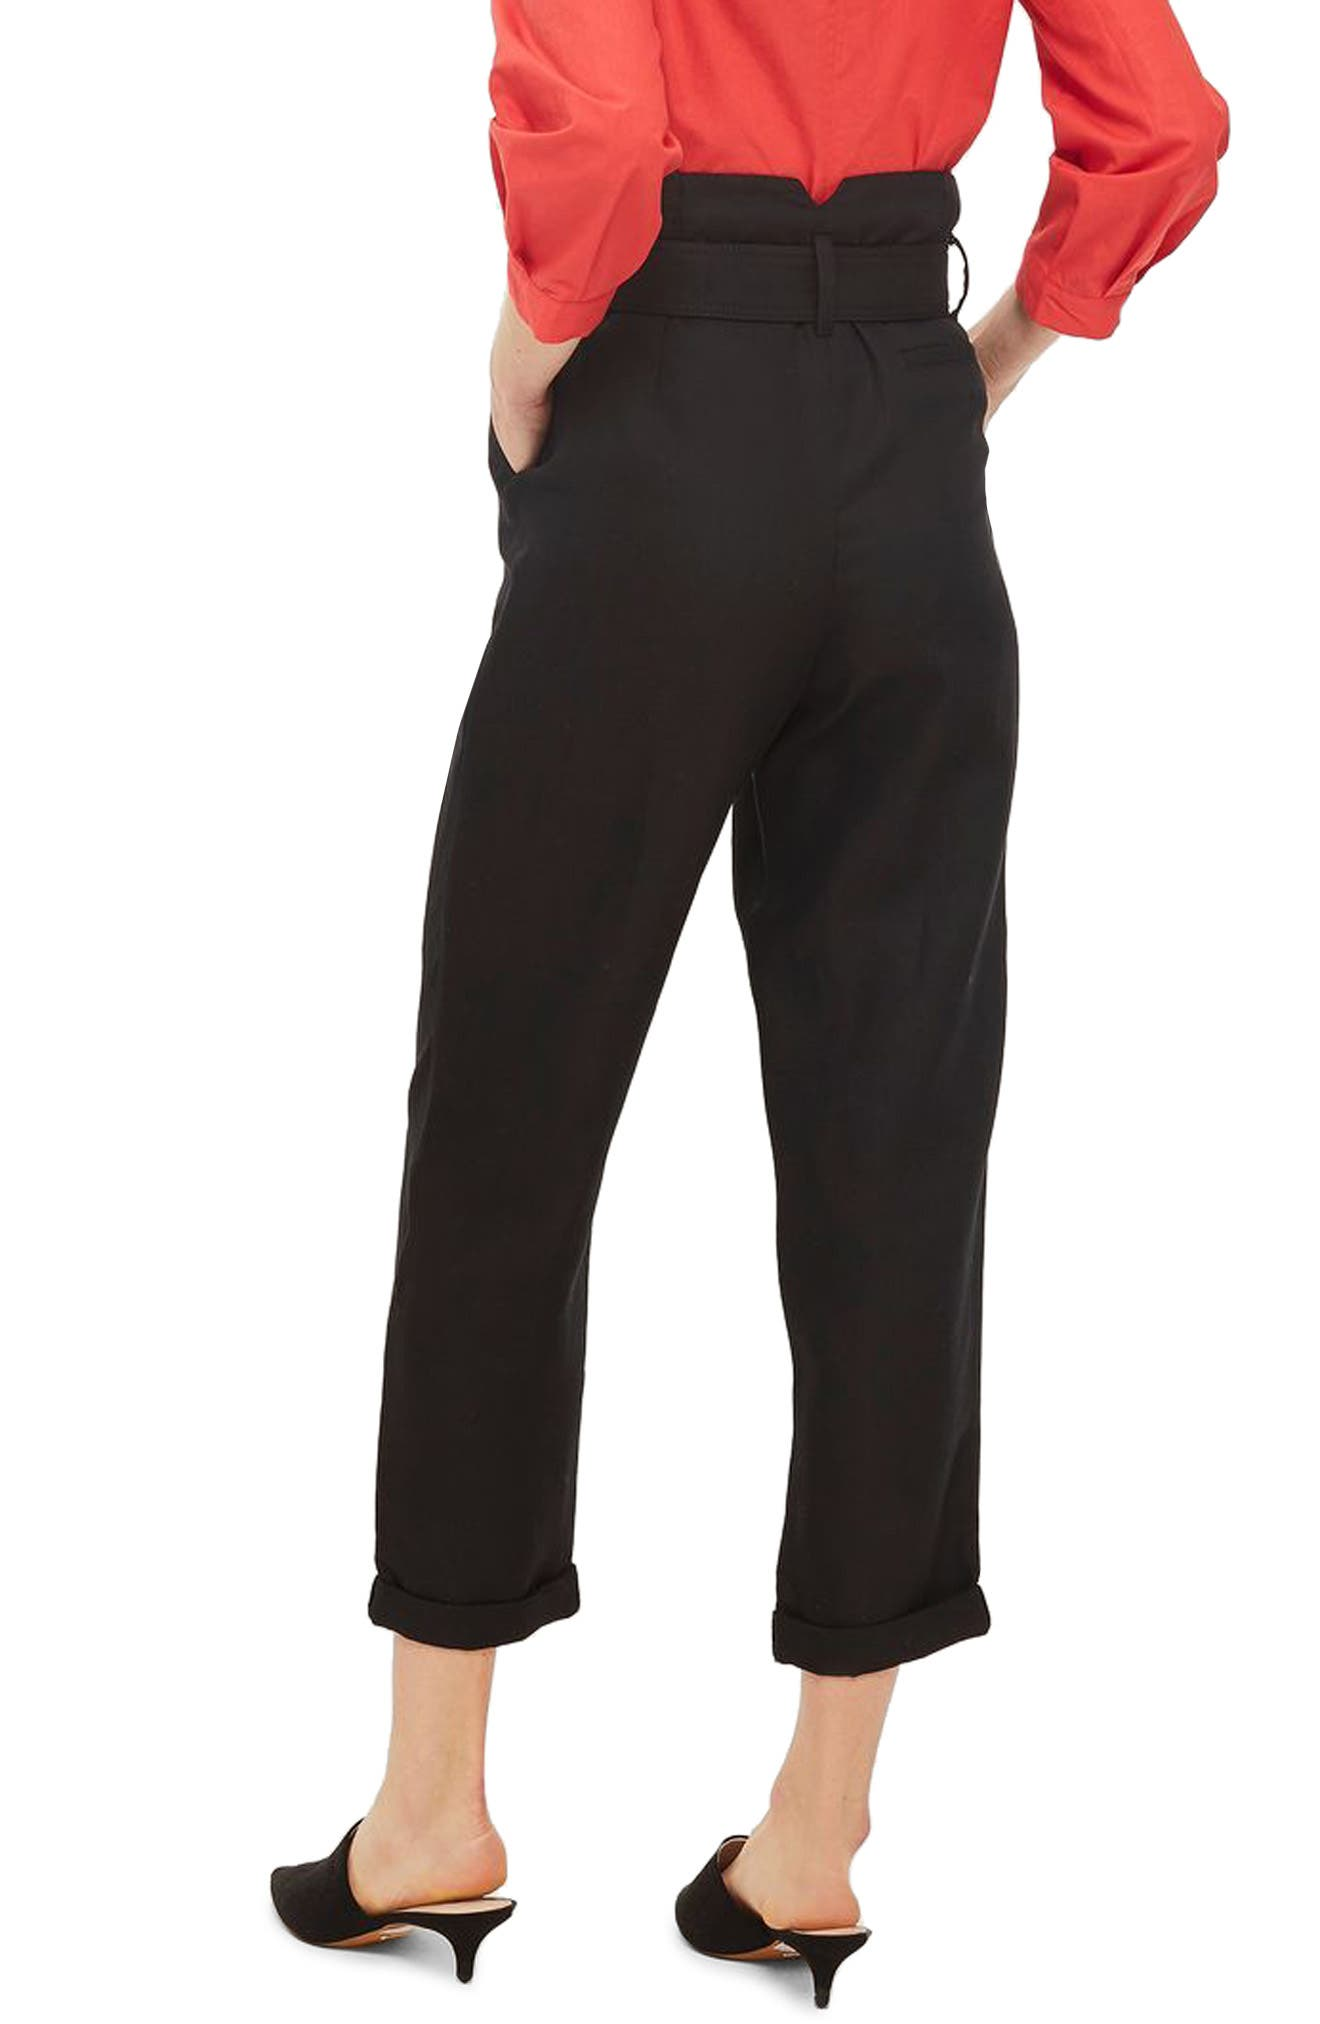 Mensy Belted Trousers,                             Alternate thumbnail 2, color,